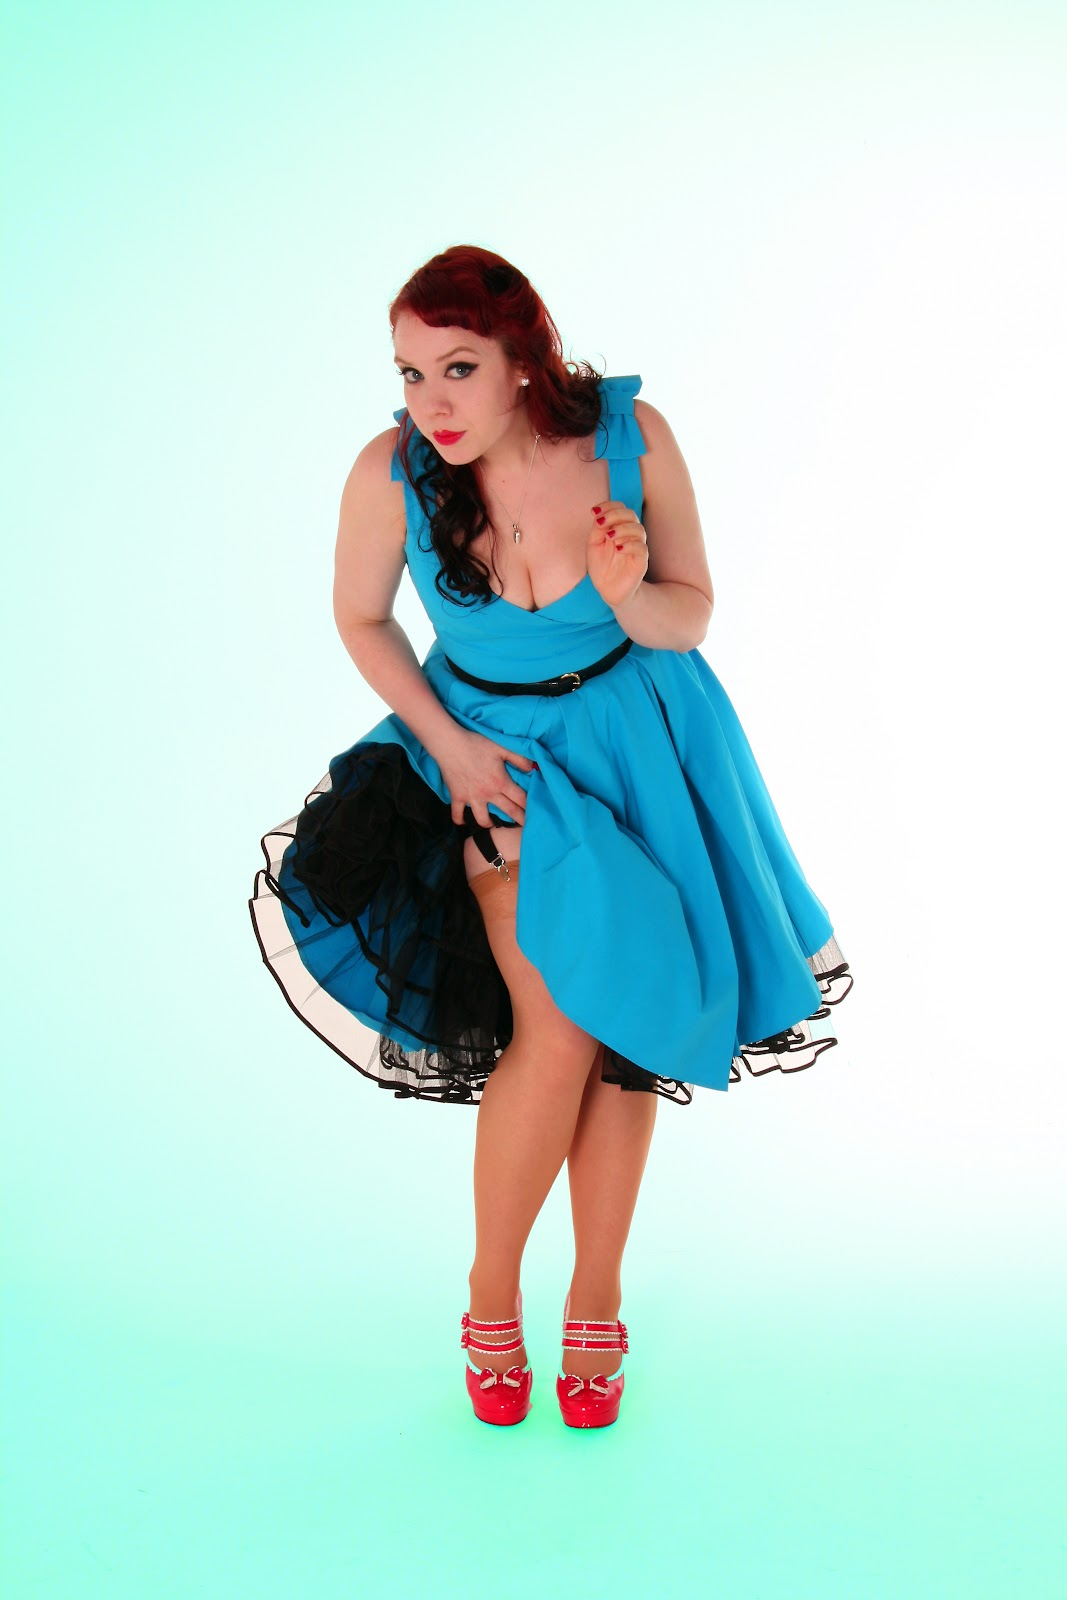 Laura Whittaker Photography: New Pin Up Shoot